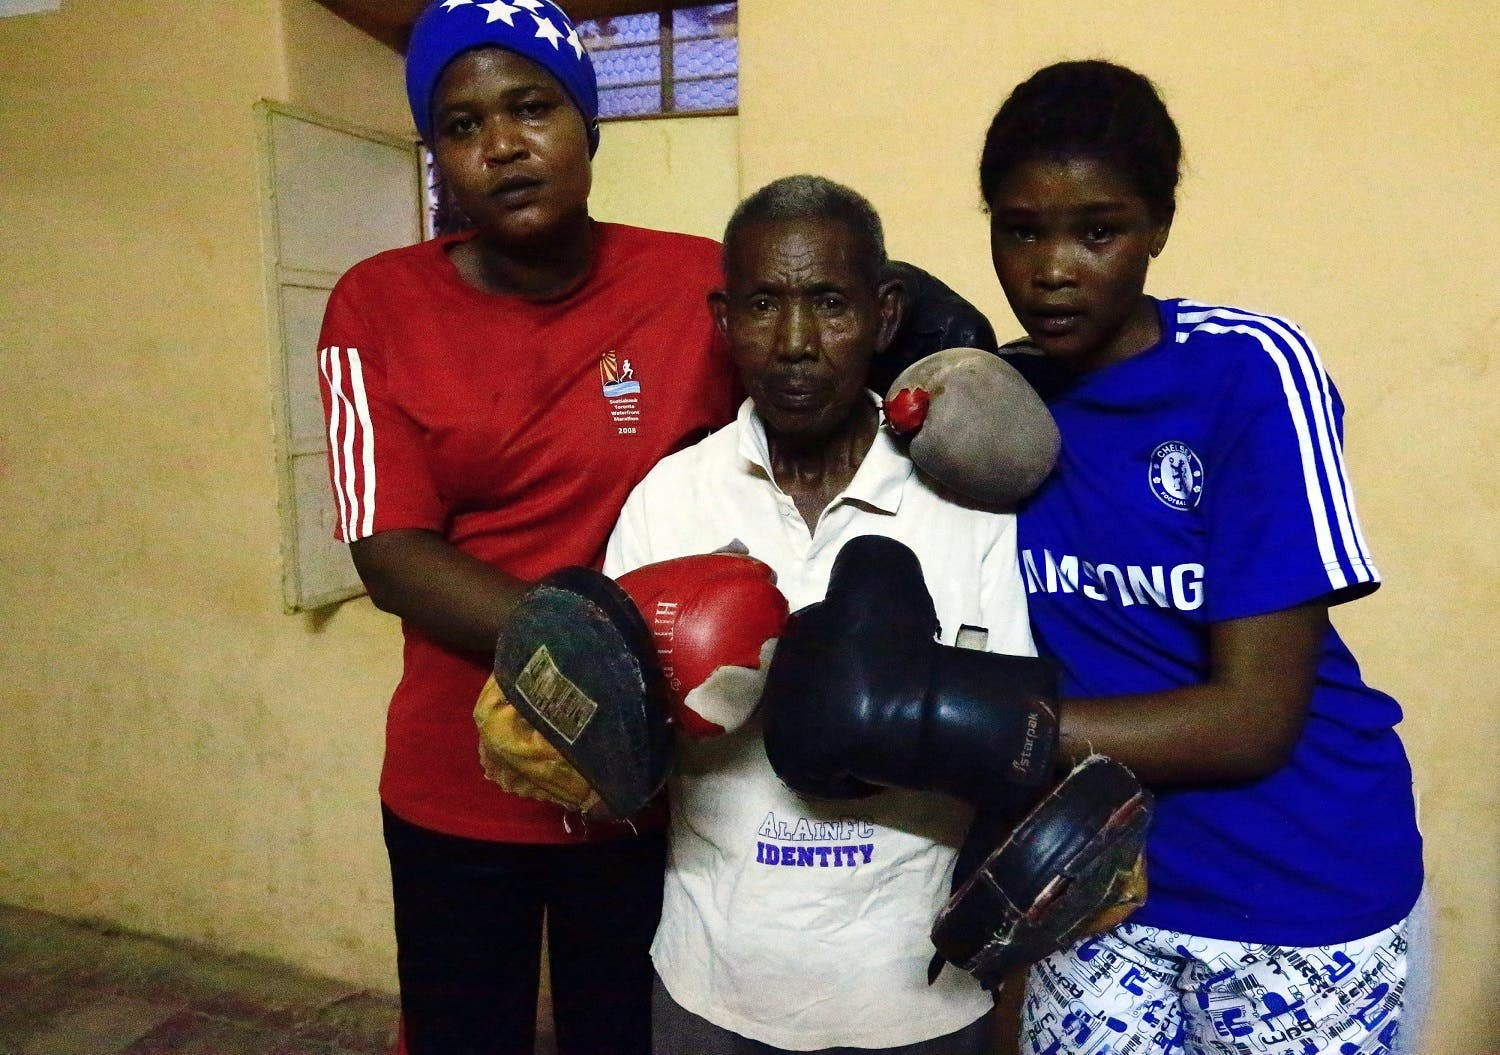 Sahar Mohamed Al Dooma (L) and Saraa Mutawkil (R) take a group photo with coach Ali Al-Aqraa after boxing practice at Al Rabie club in Omdurman May 10, 2016. REUTERS